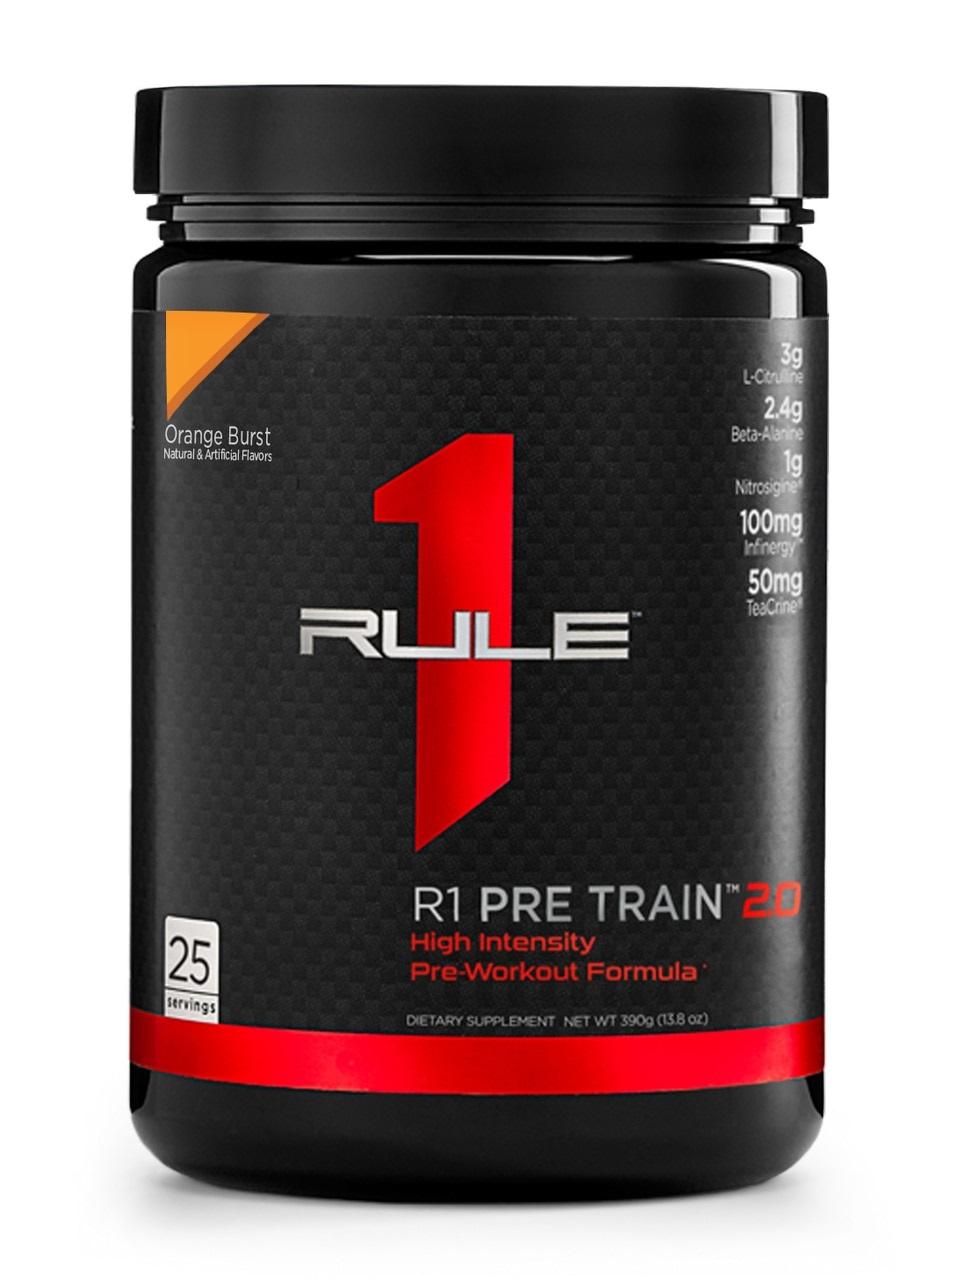 Rule 1 R1 Pre Train